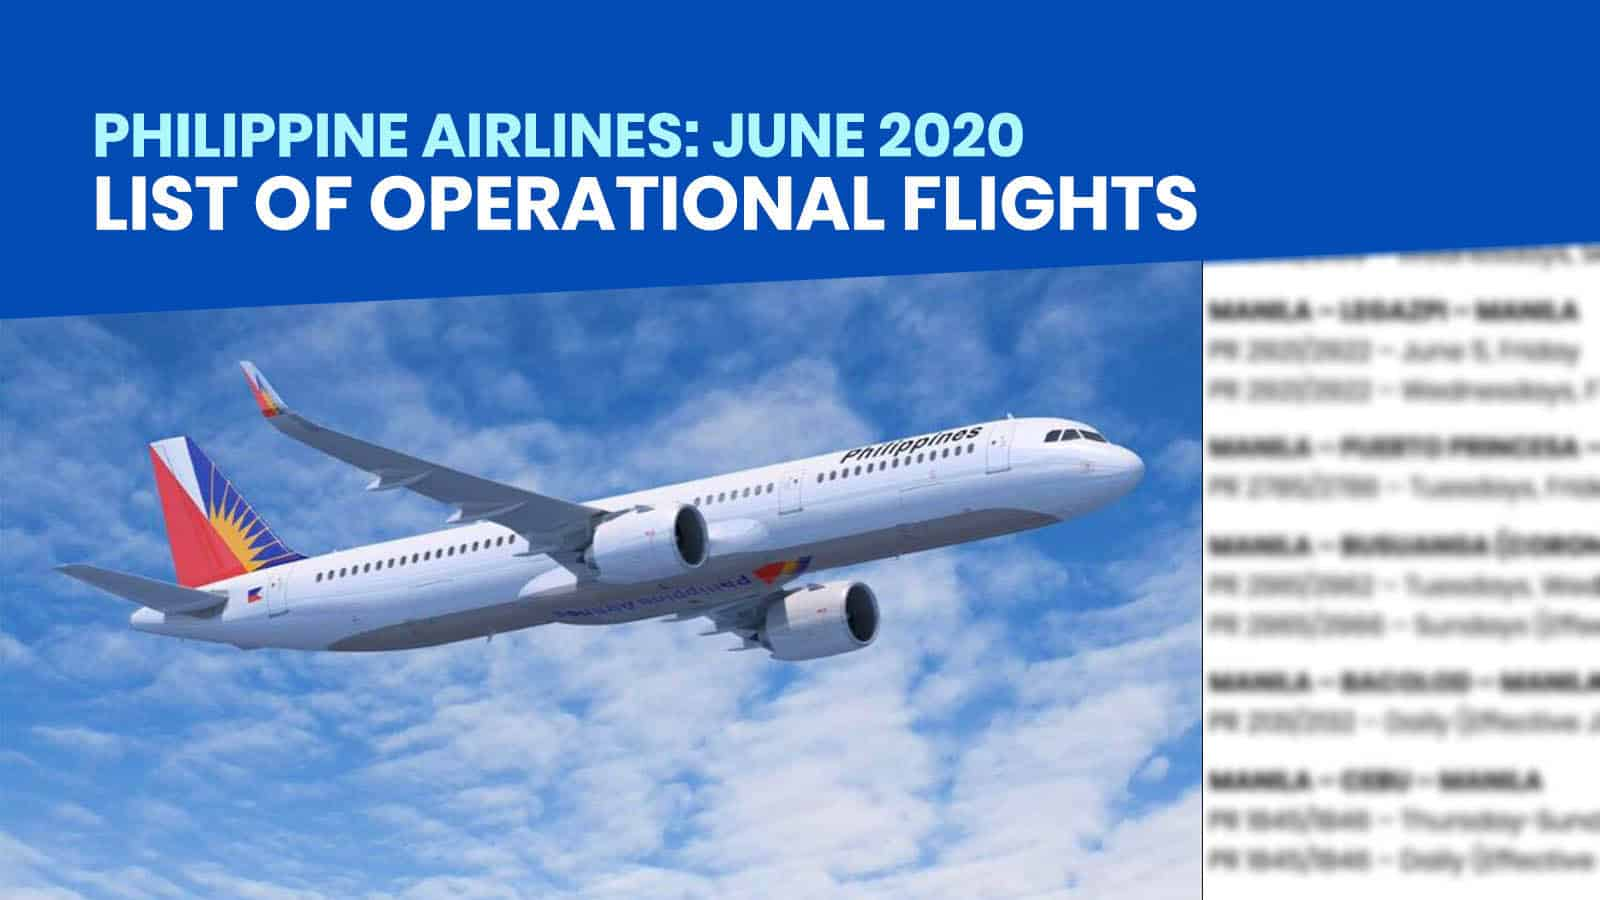 Philippine Airlines List Of Operational Flights For June 2020 The Poor Traveler Itinerary Blog